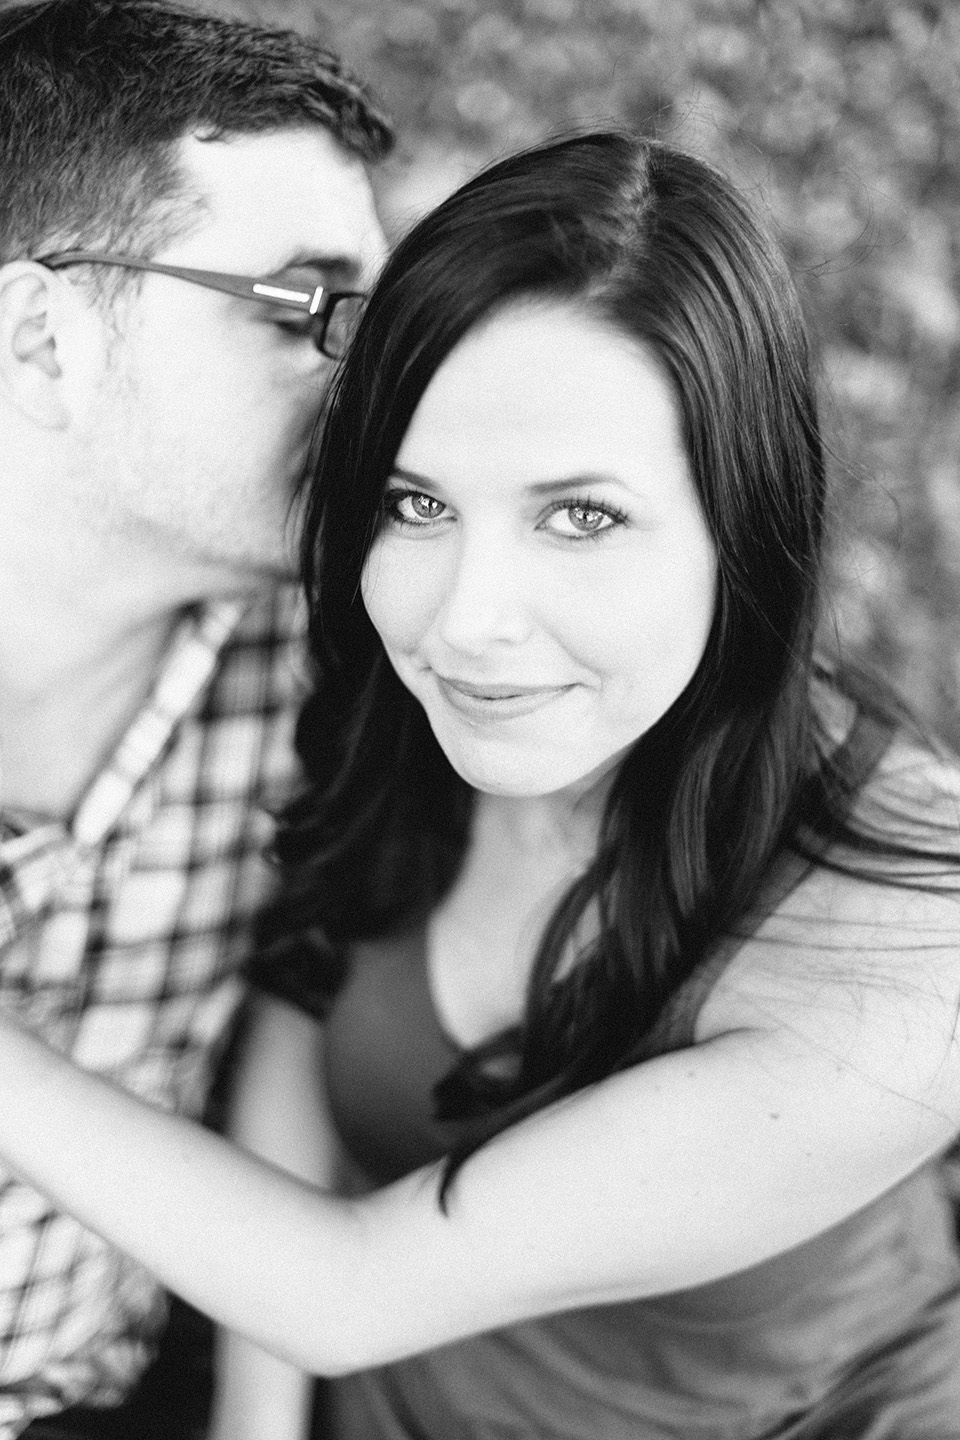 Picture of an engaged couple in downtown Orlando.  The woman is looking into the camera while holding her fiance.  The image is in black and white.